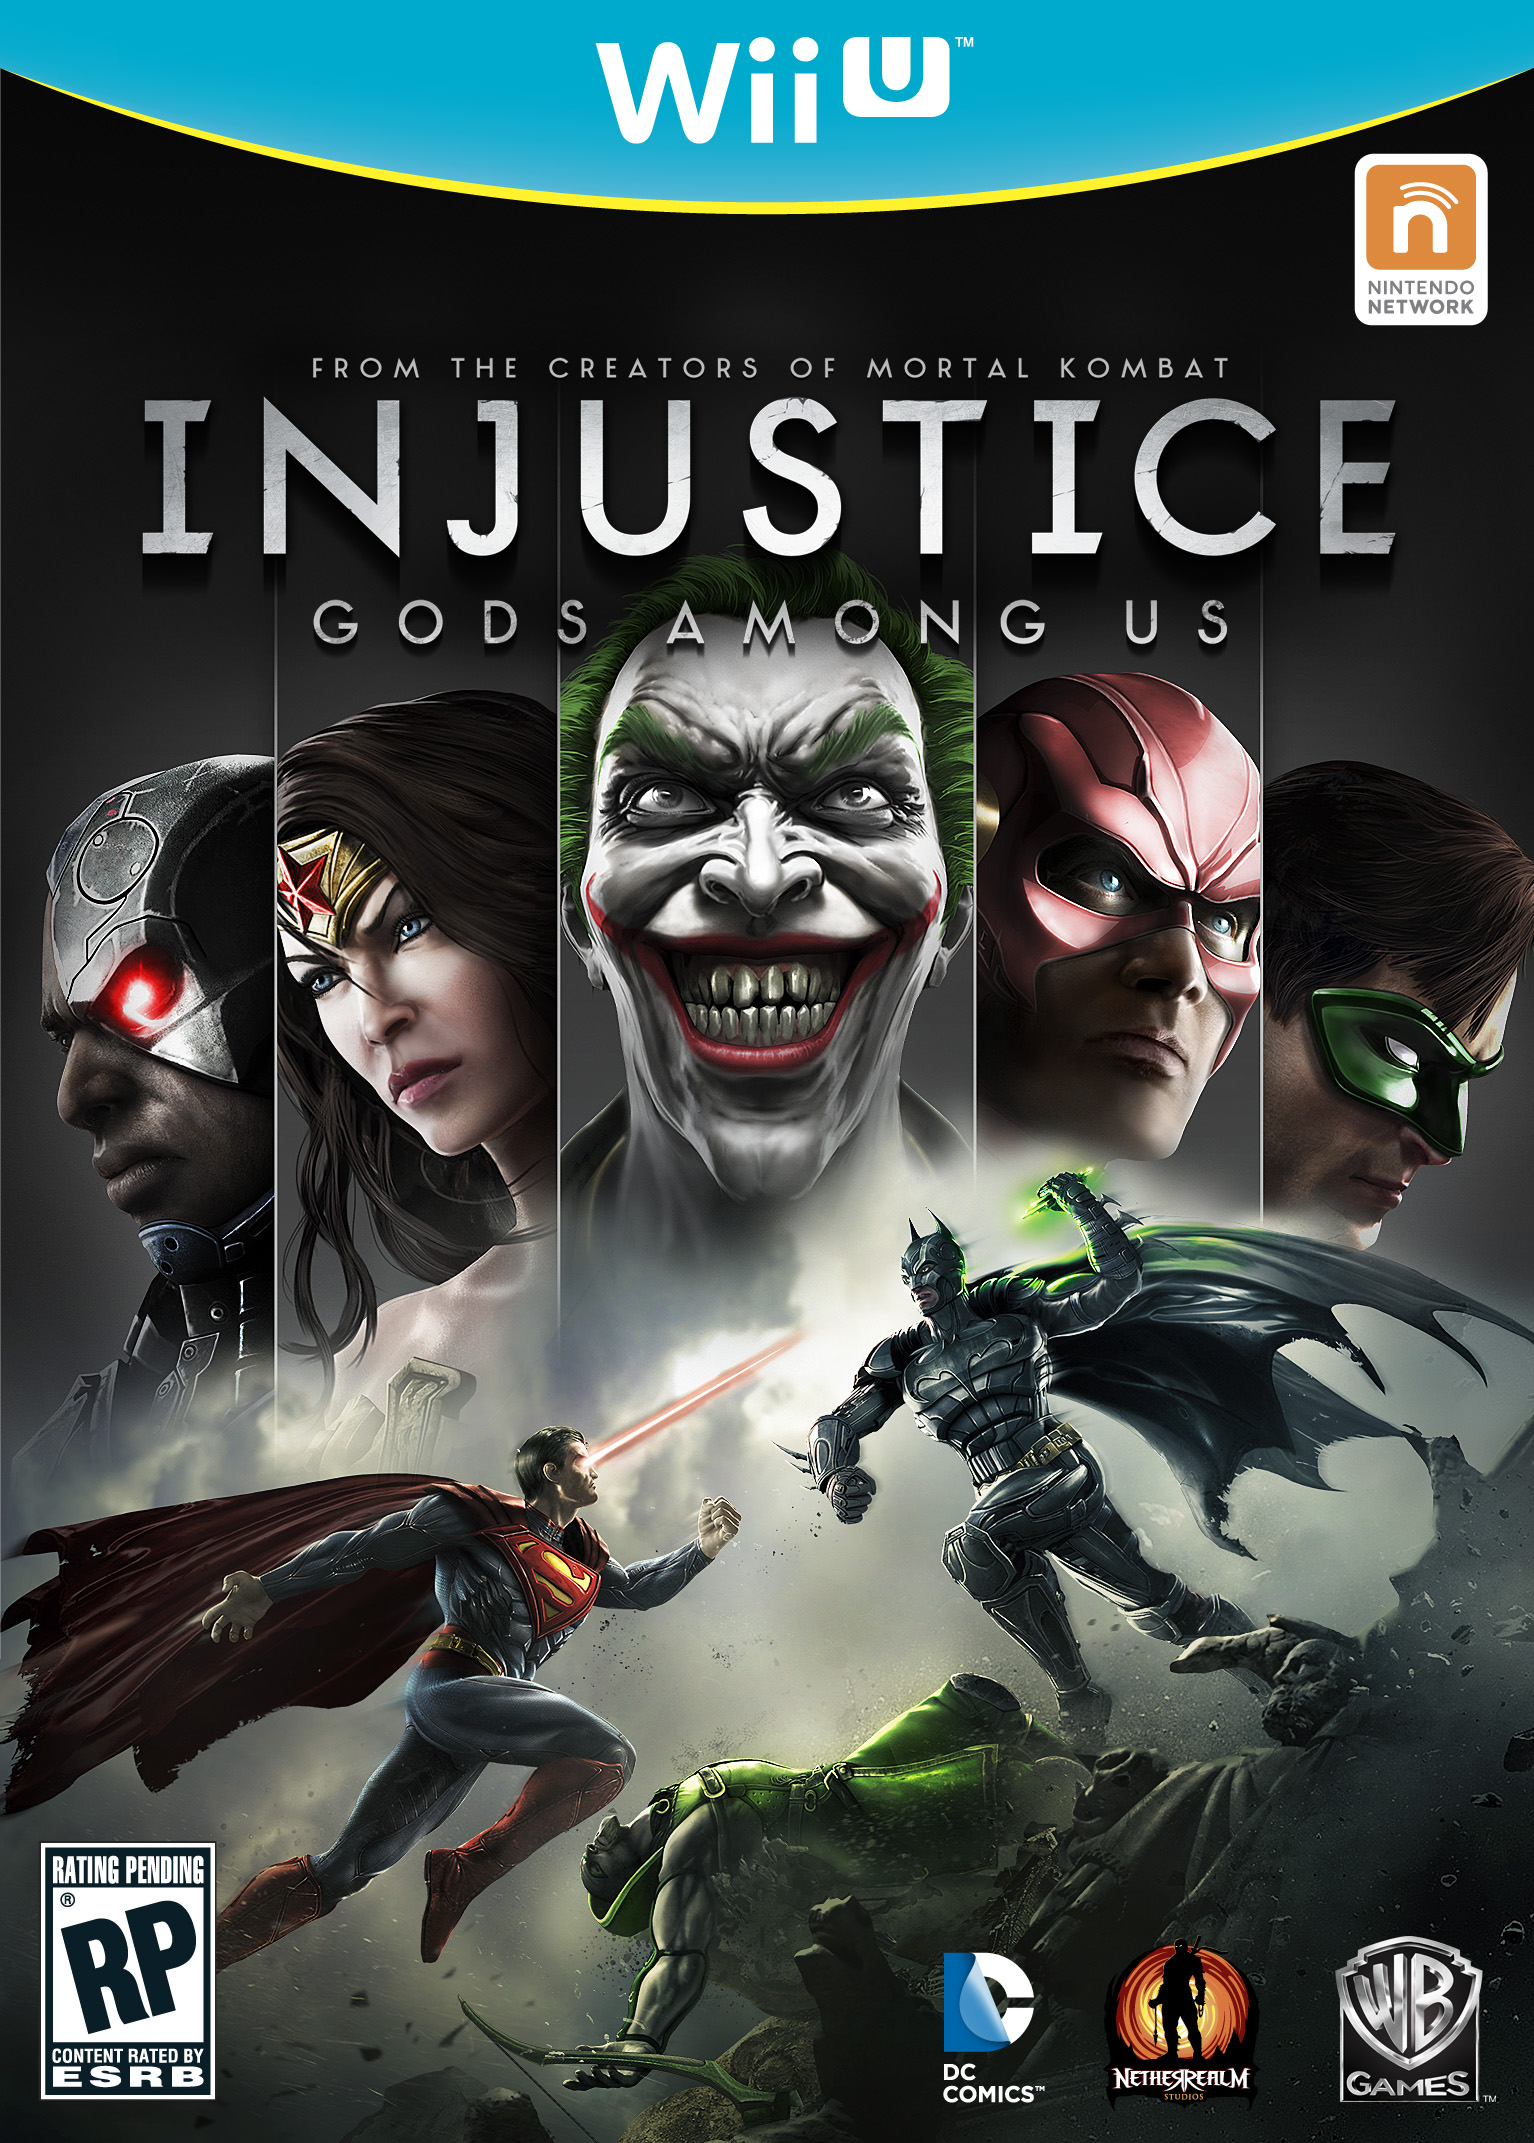 Injustice: Gods Among Us Wii U Cover